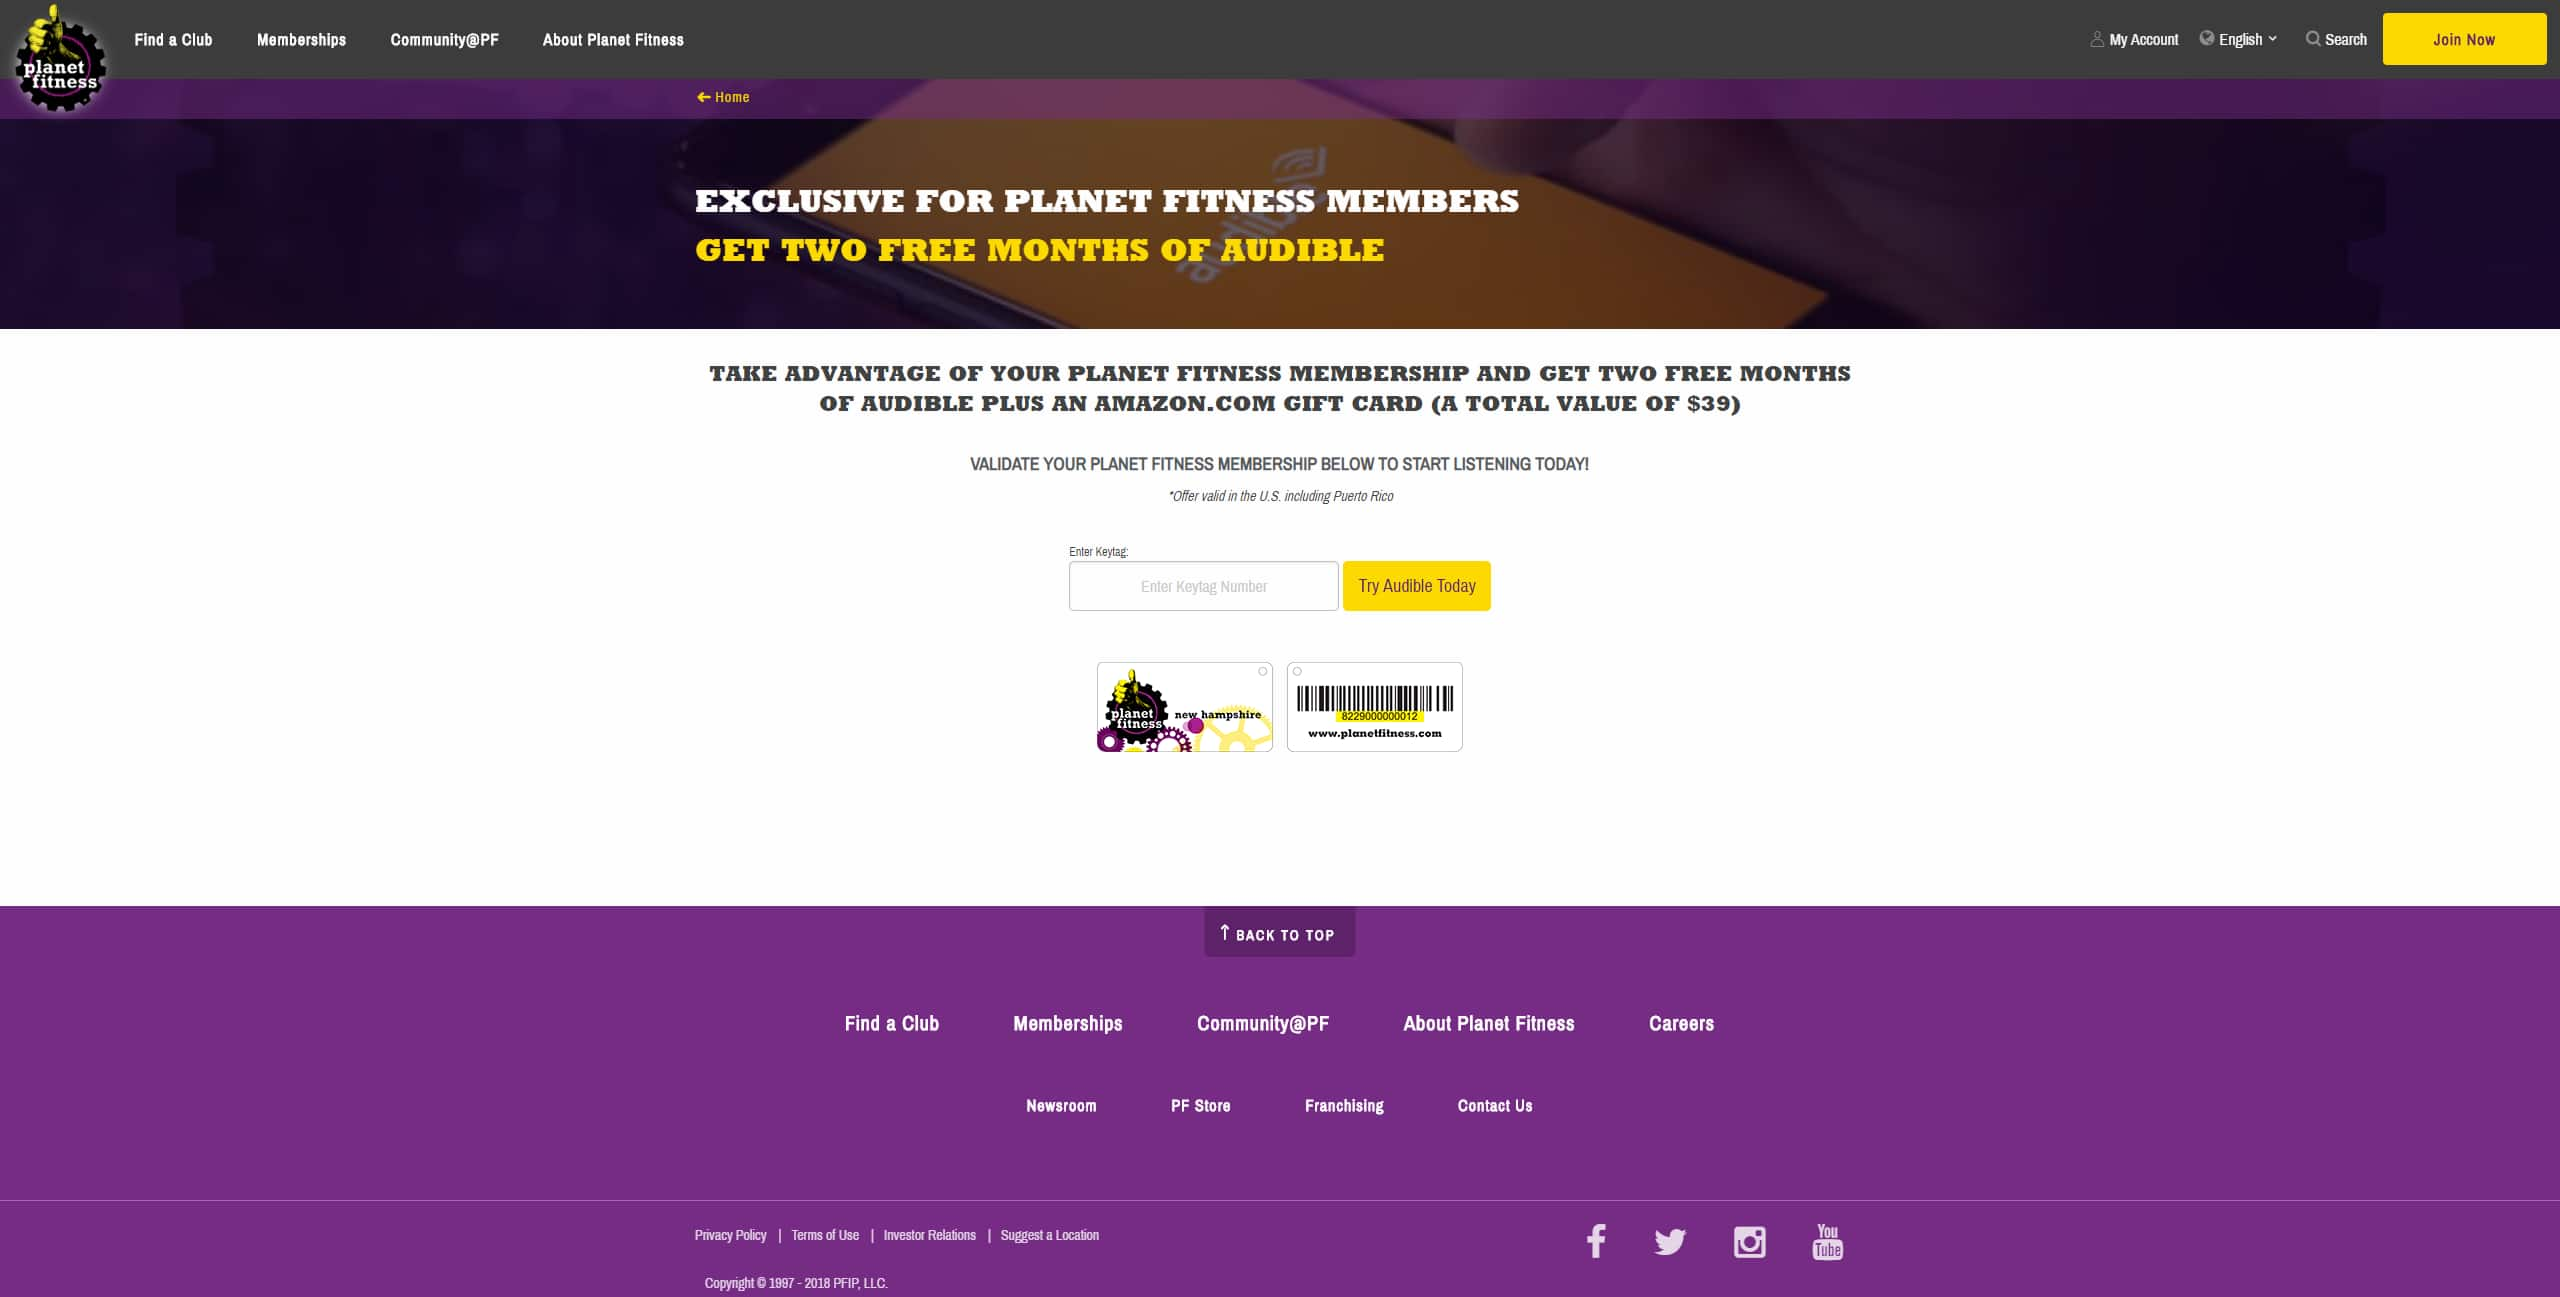 Planet Fitness members get free 10$ Amazon Gift Card plus 2 Month Audible